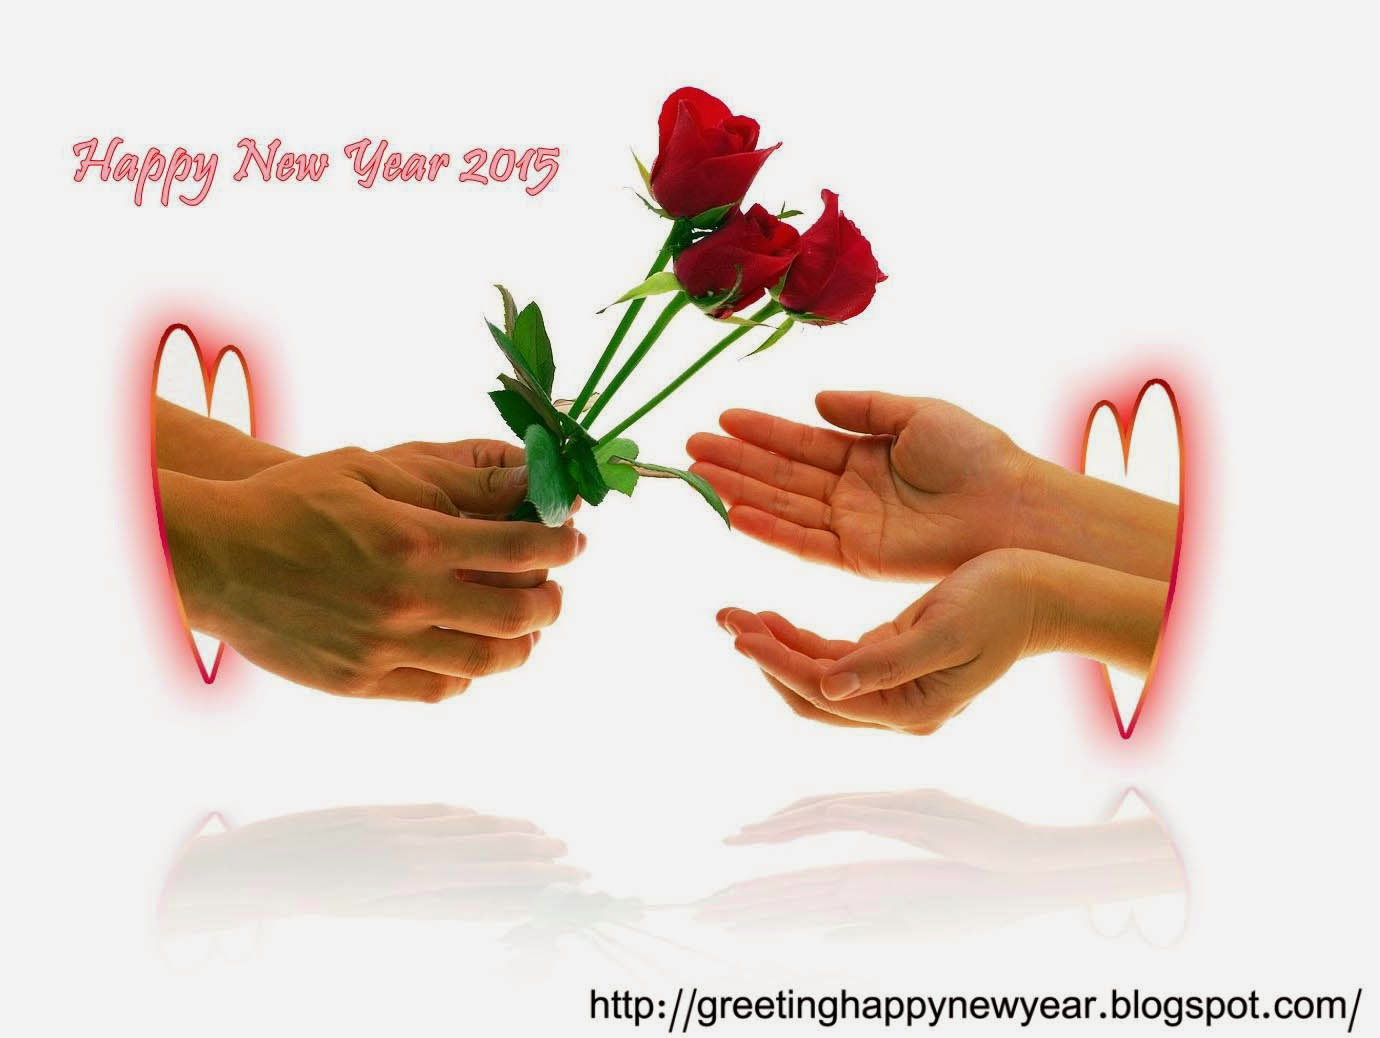 Greeting Happy New Year 2015 Backgrounds – Love Wishing Images